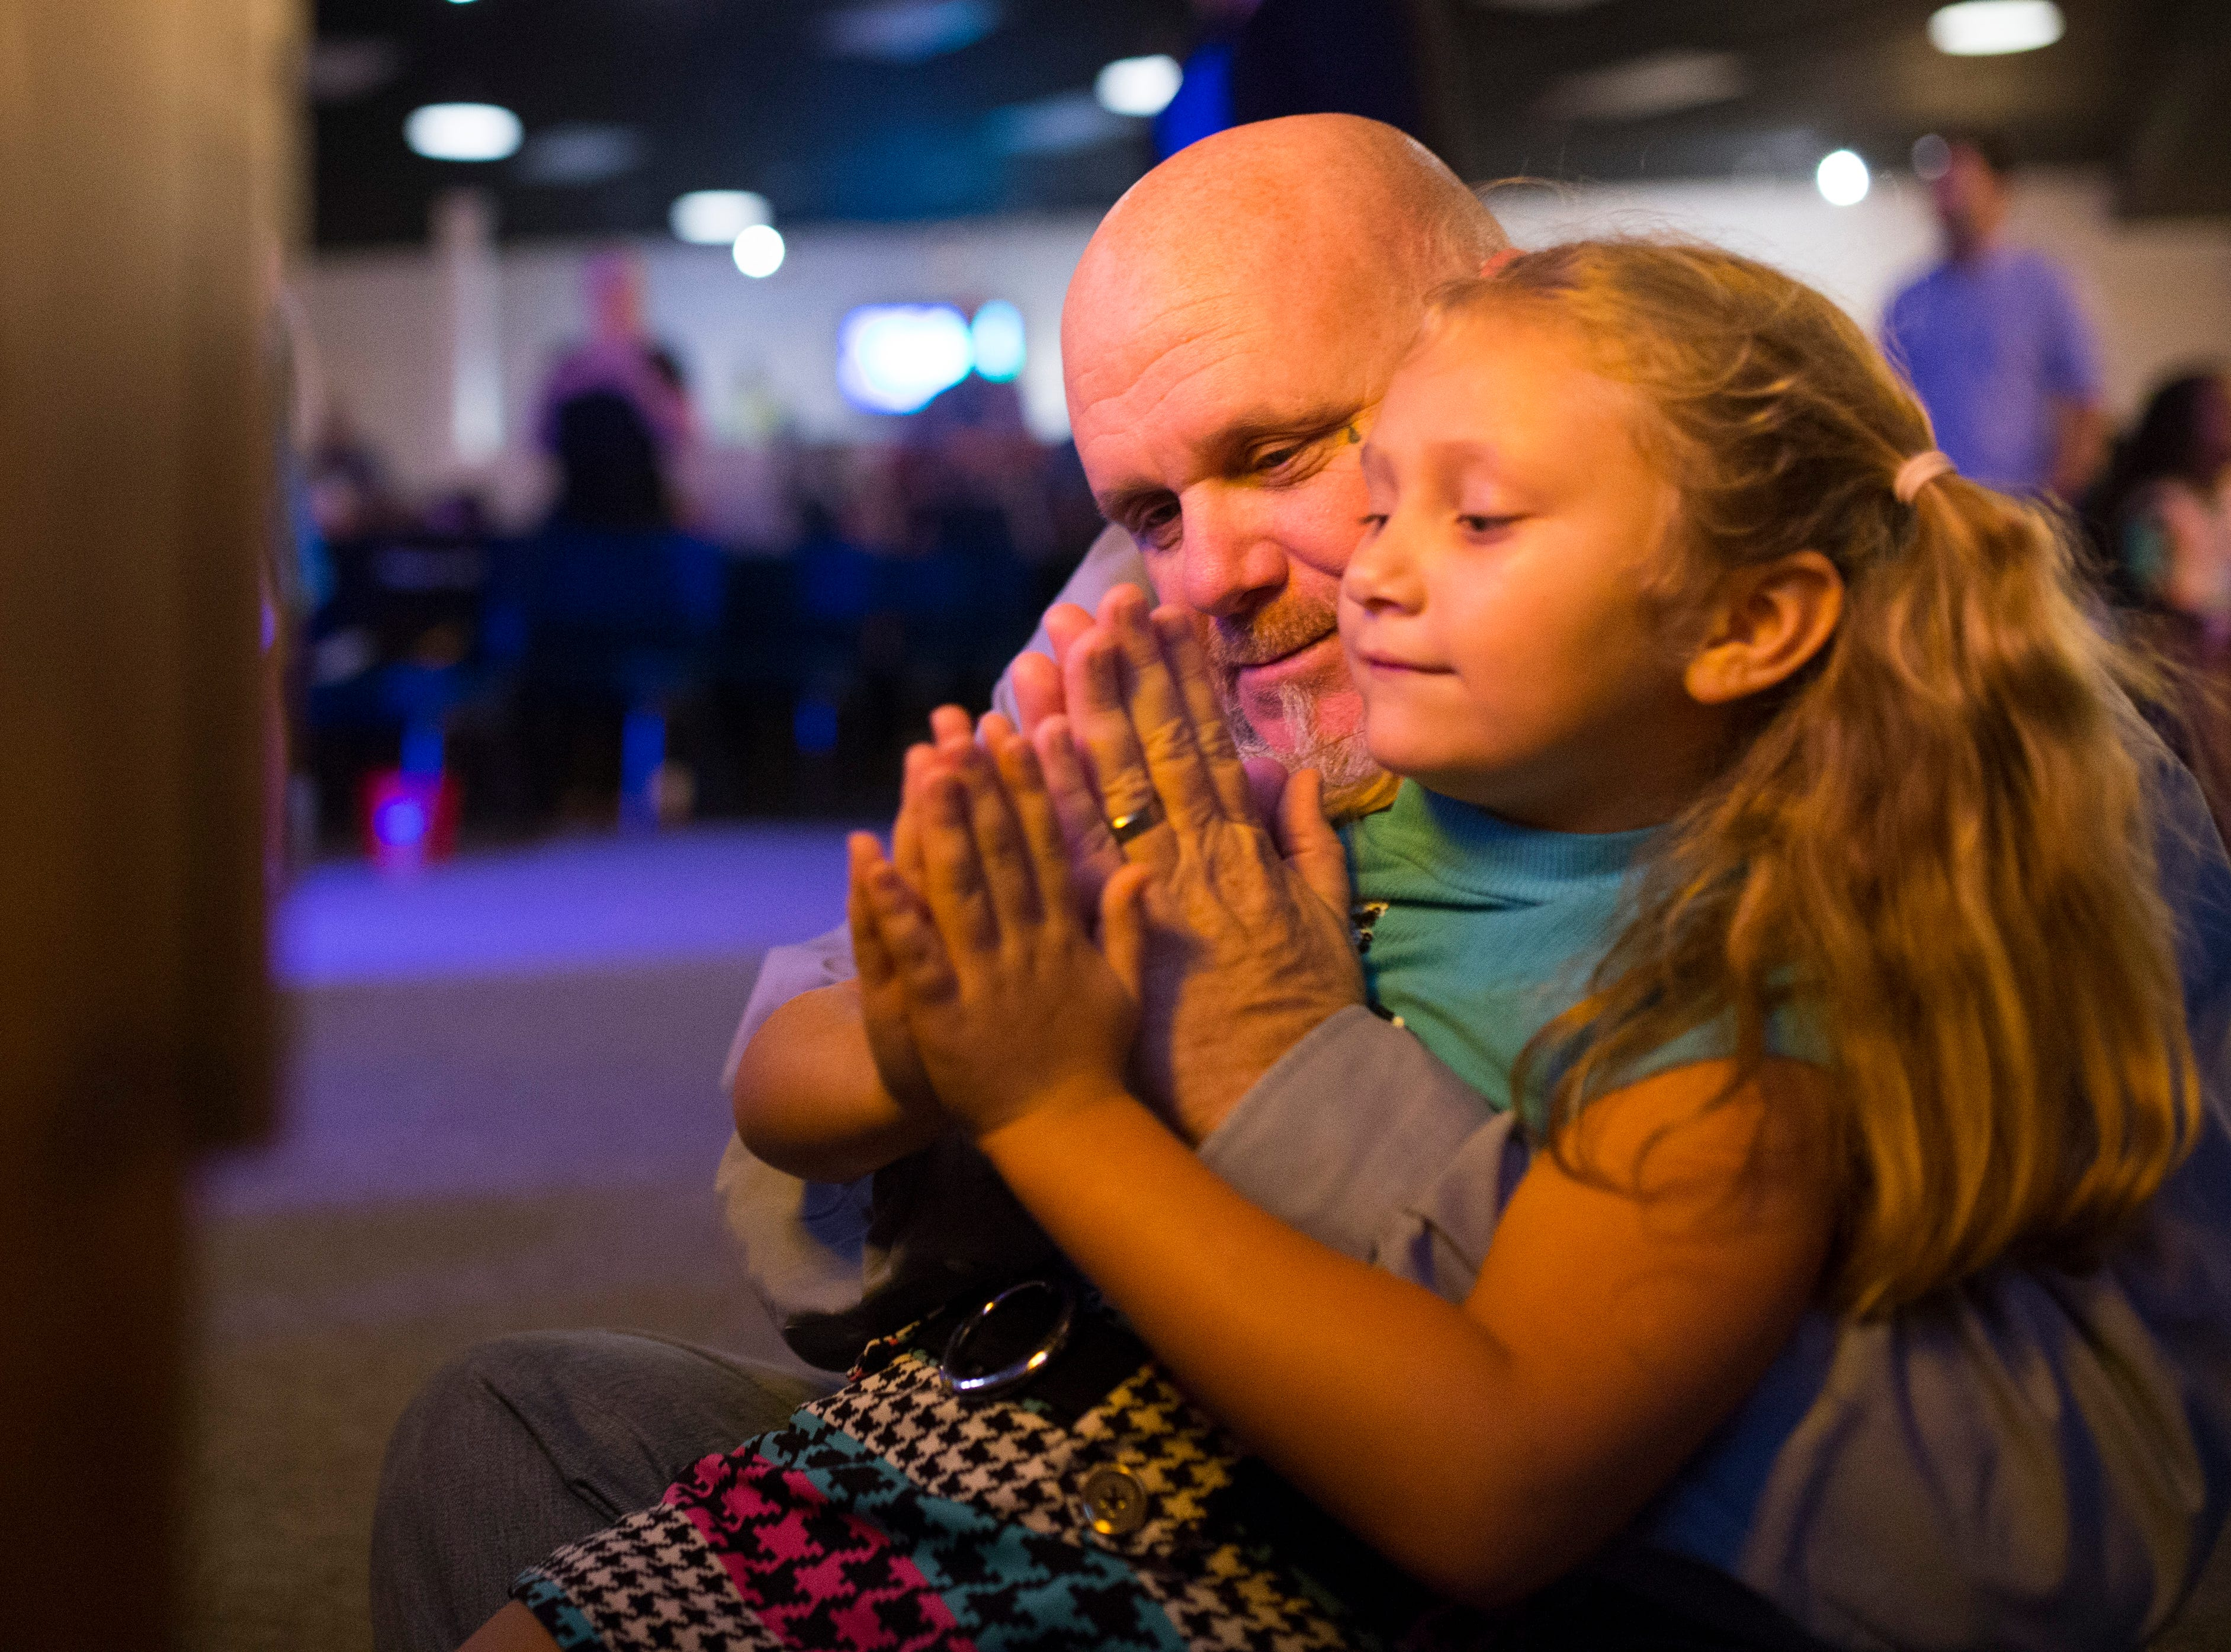 Troy Walters prays at church with his granddaughter on Wednesday, Oct. 24, 2018 in Corpus Christi.  His family has struggled with addiction over the years. Now he's a drug counselor for South Texas Substance Abuse Recovery Services.